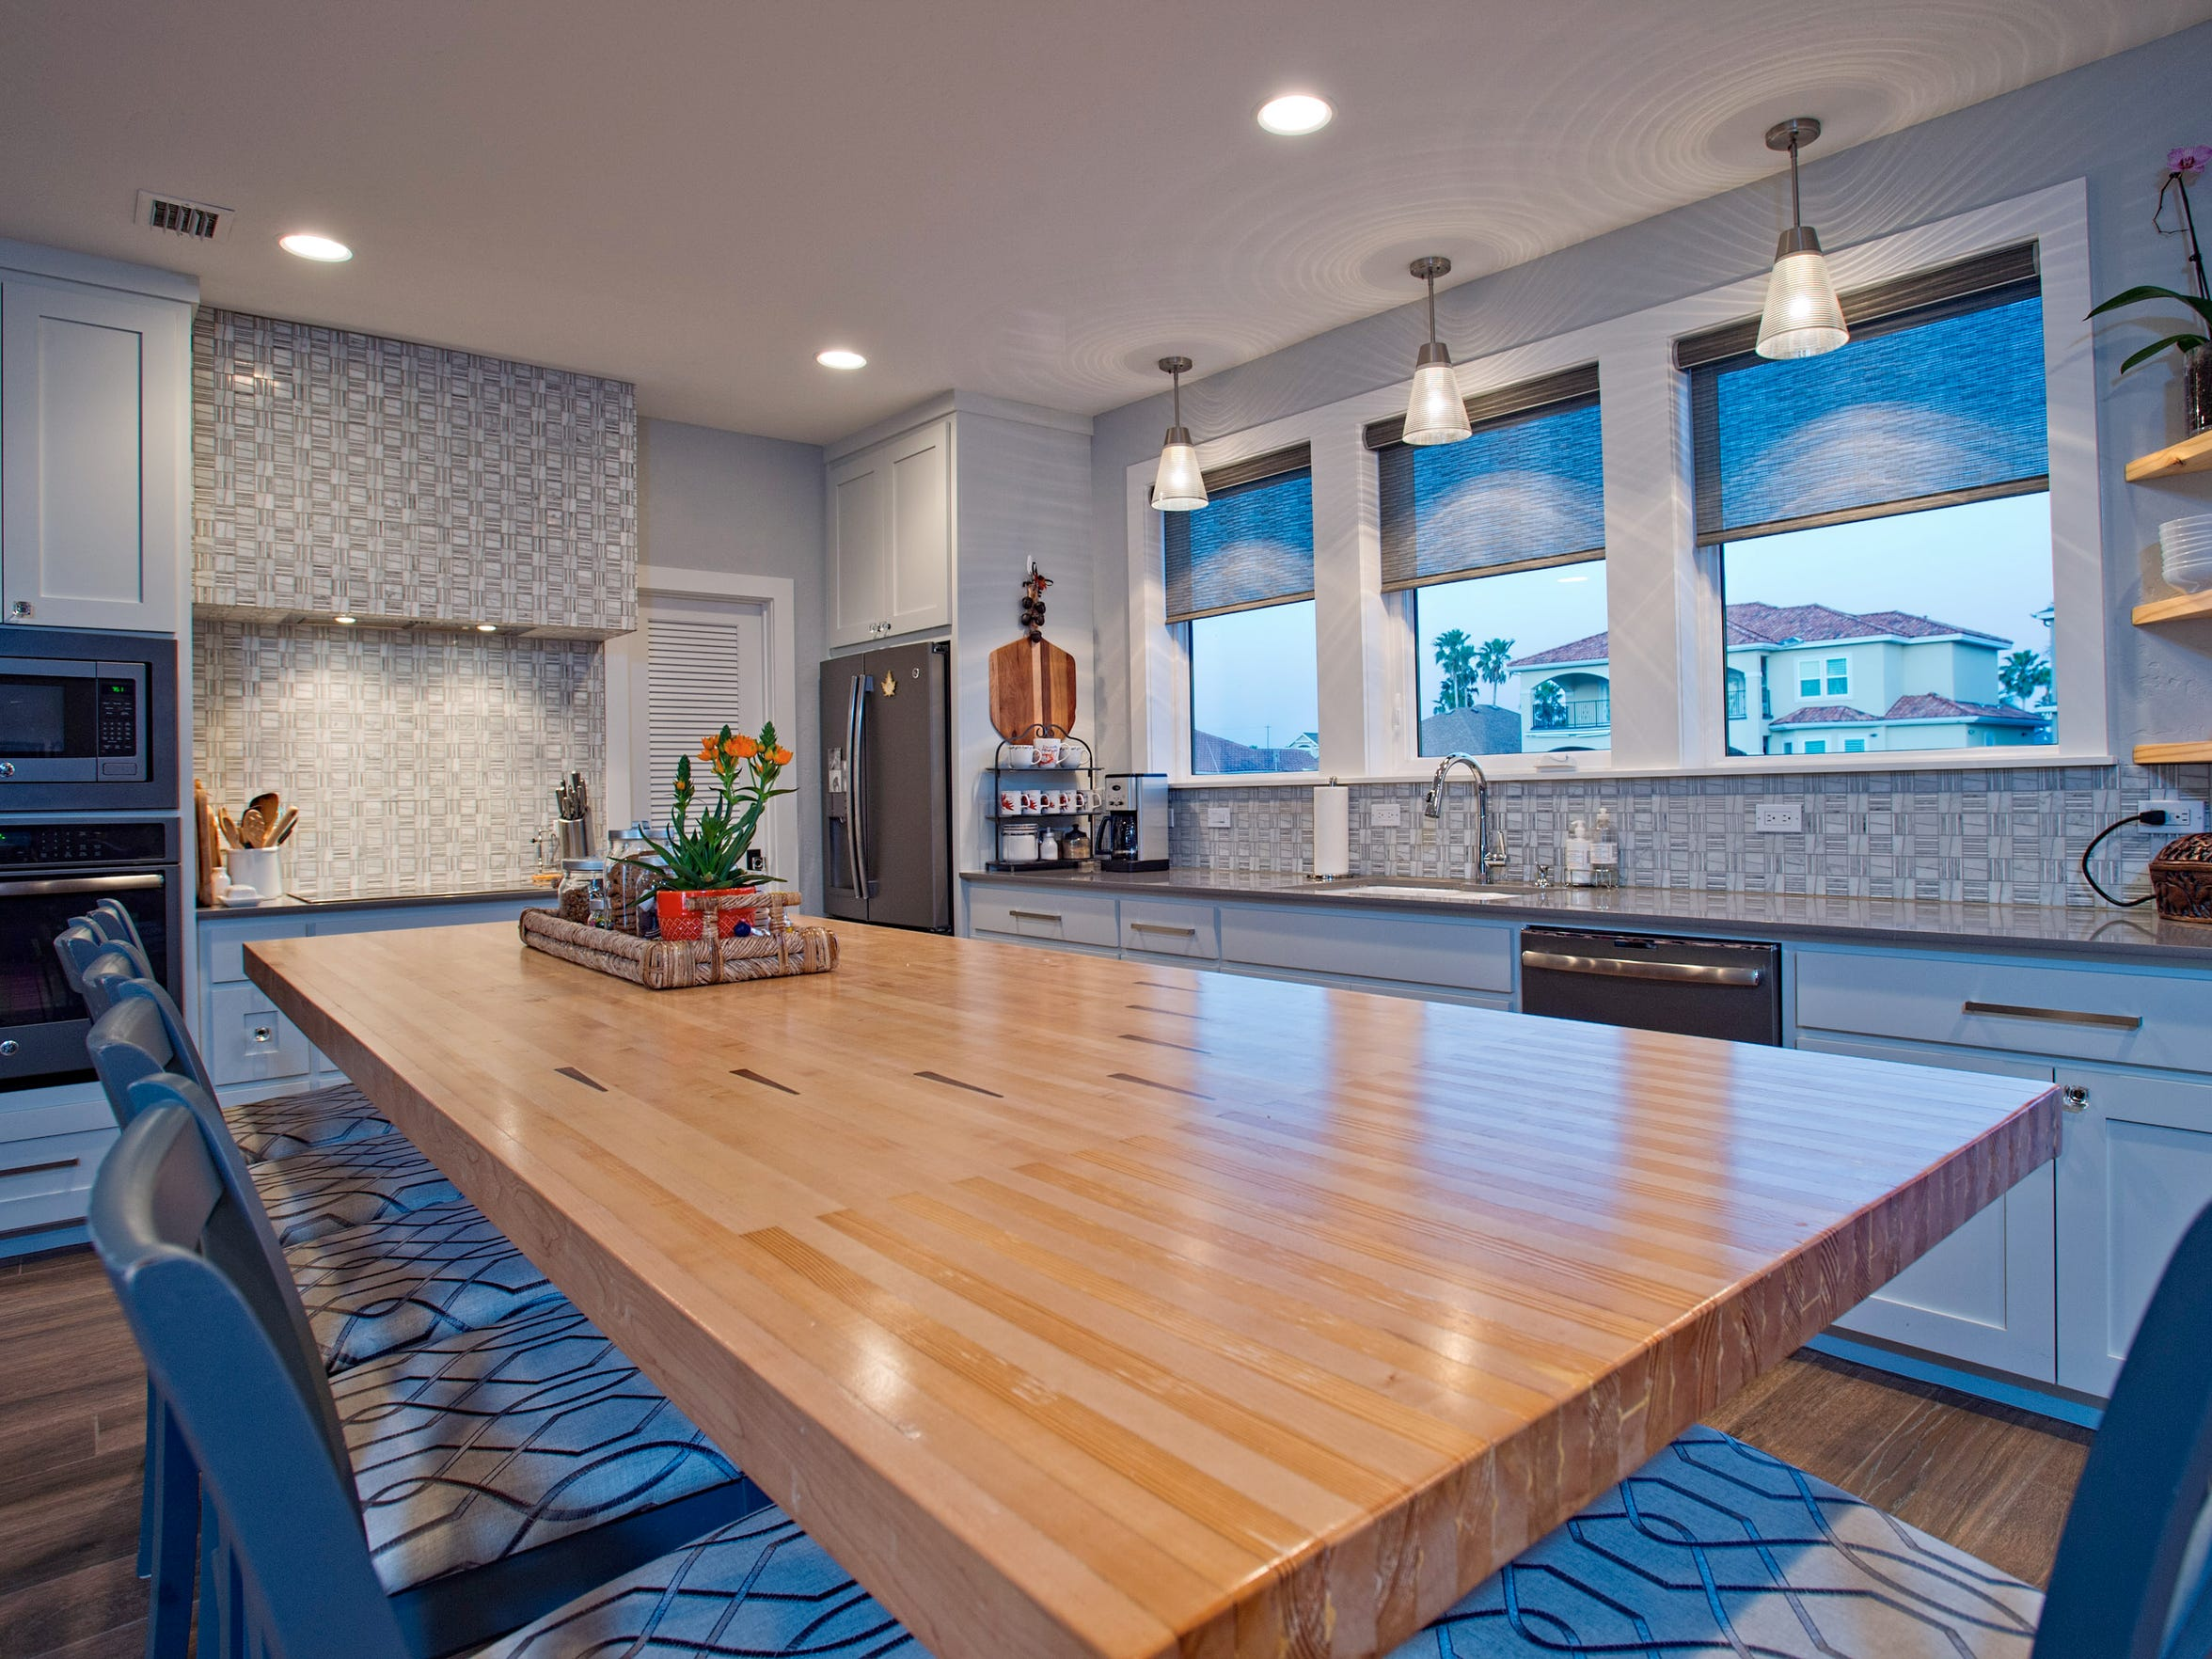 The kitchen island was created by Herb Lancaster from